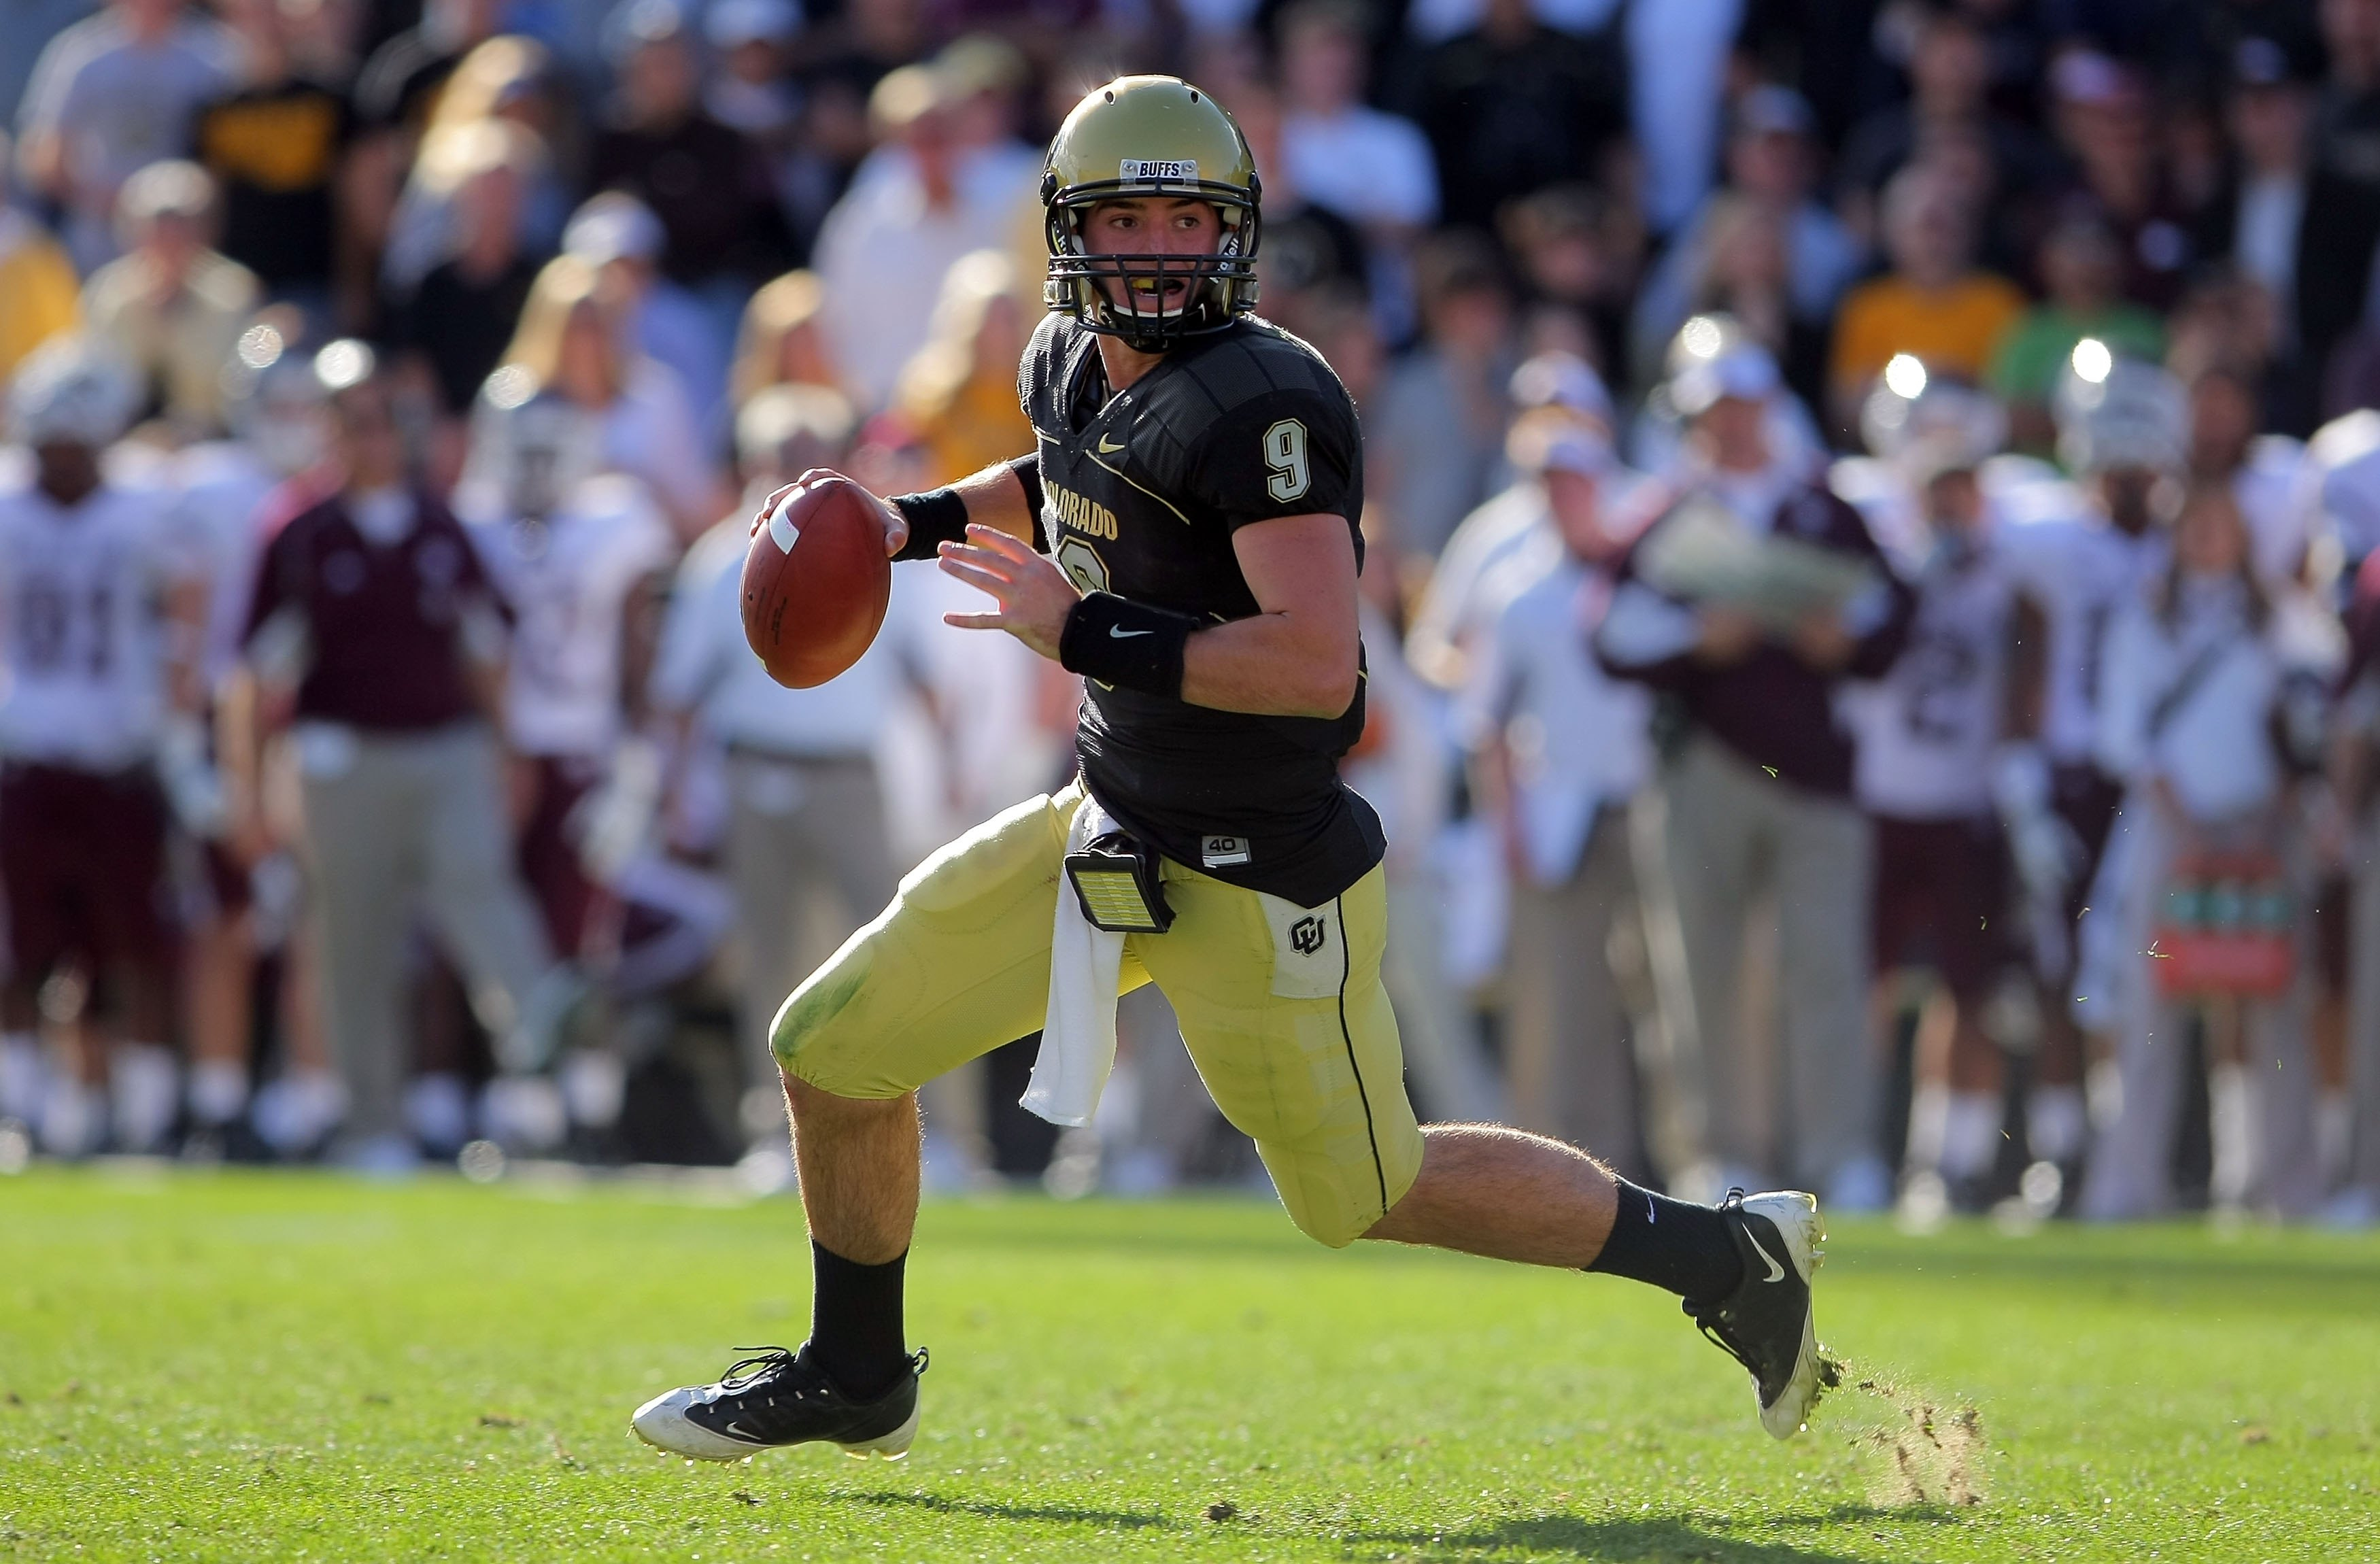 BOULDER, CO - NOVEMBER 07:  Quarterback Tyler Hansen #9 of the Colorado Buffaloes rolls out to deliver a pass against the Texas A&M Aggies during NCAA college football action at Folsom Field on November 7, 2009 in Boulder, Colorado. Colorado defeated Texa